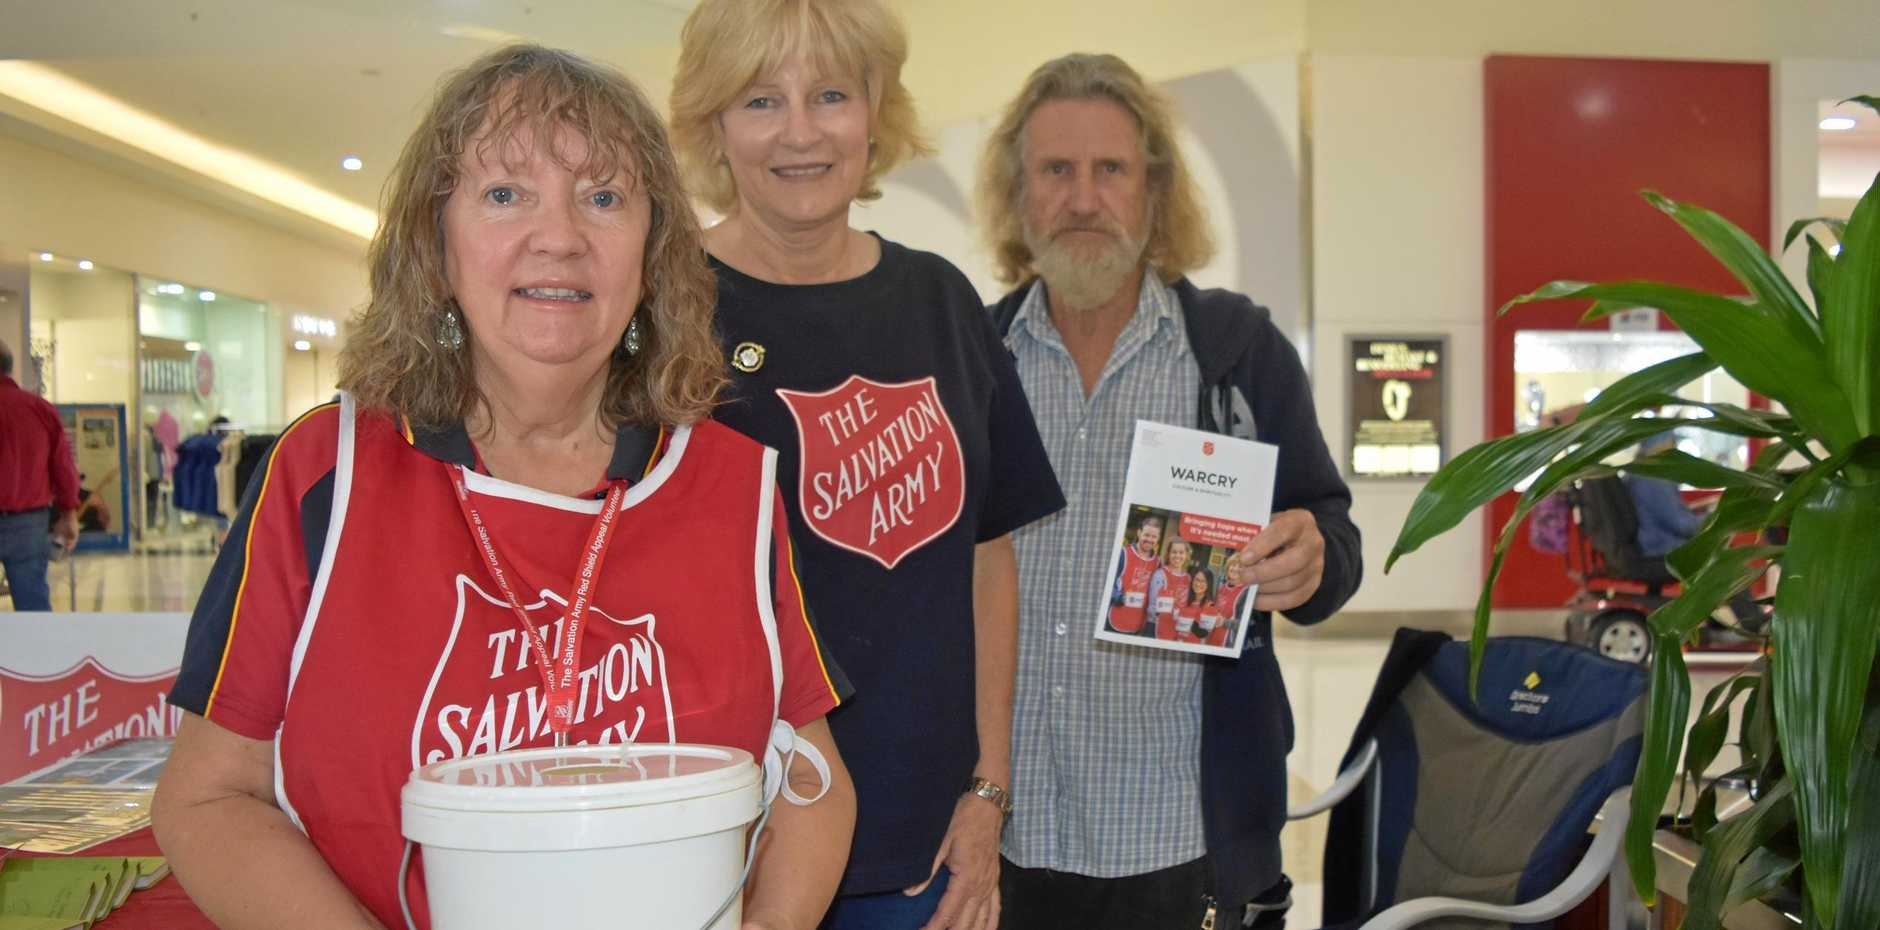 PAINTING DALBY RED: Salvation Army collectors Phyllis Wood, Christine Brooks, and Allan Wood have set up shop at Dalby Shoppingworld.